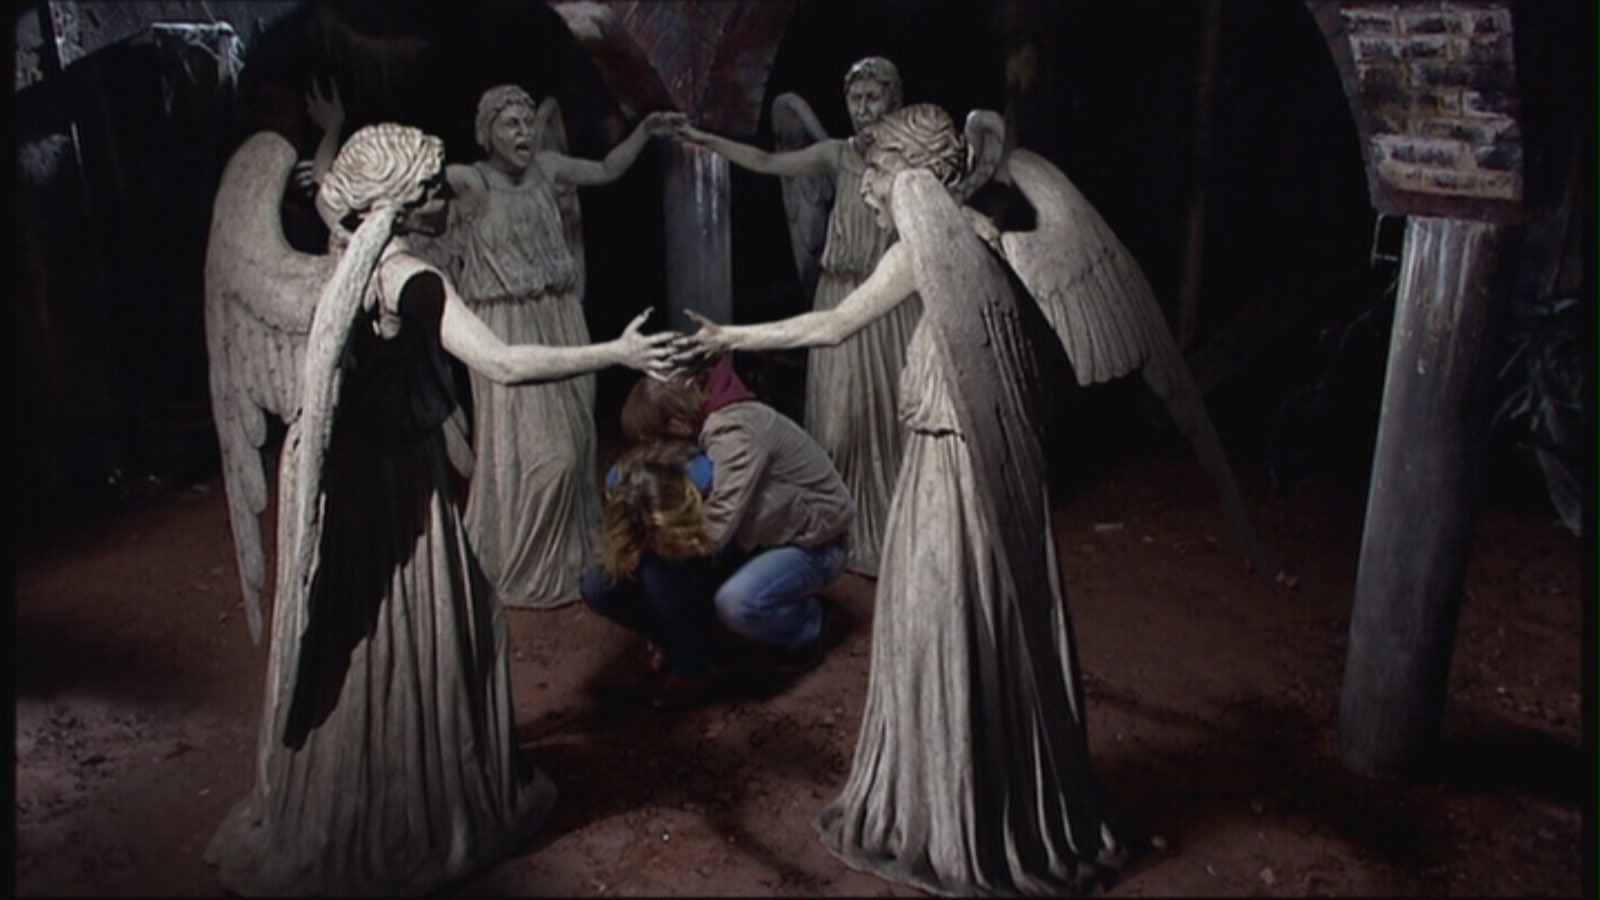 Weeping Angel Wallpaper Moving Screen 91 images in Collection 1600x900